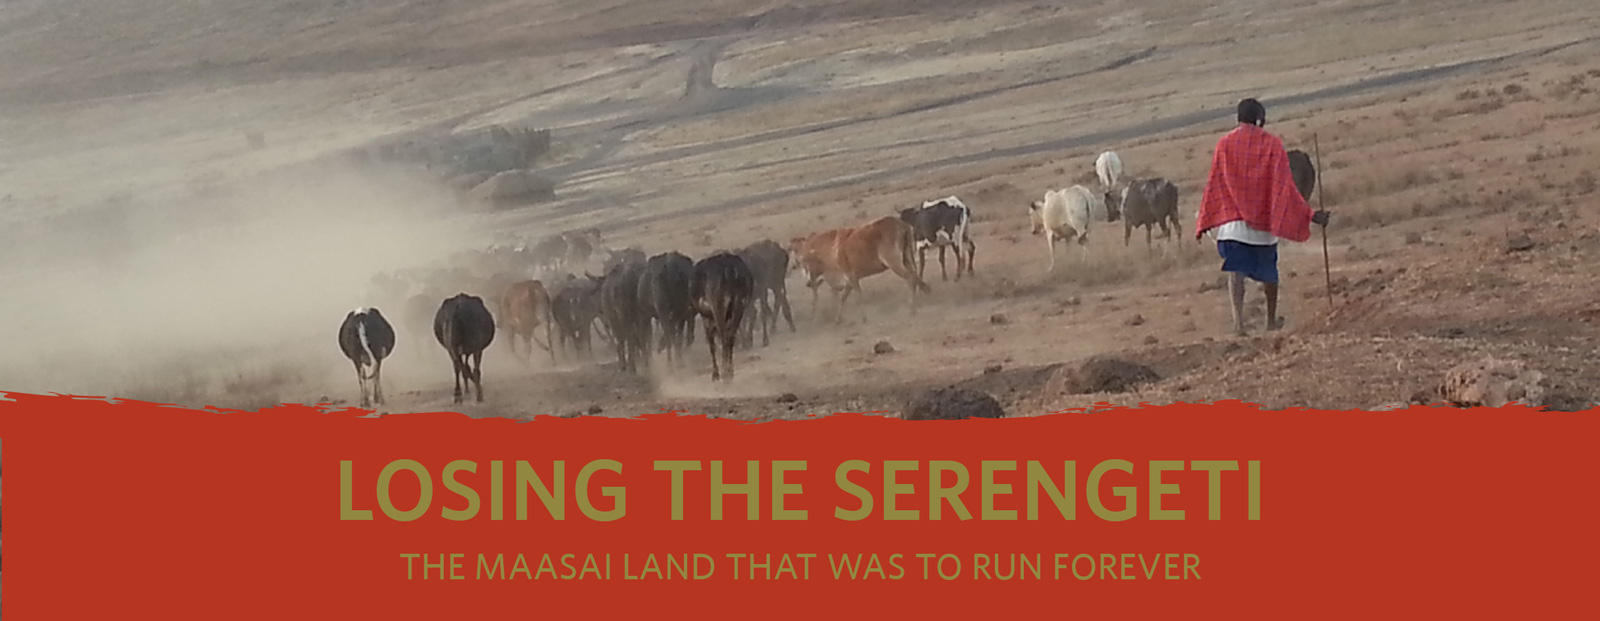 Losing the Serengeti: Report Cover Title